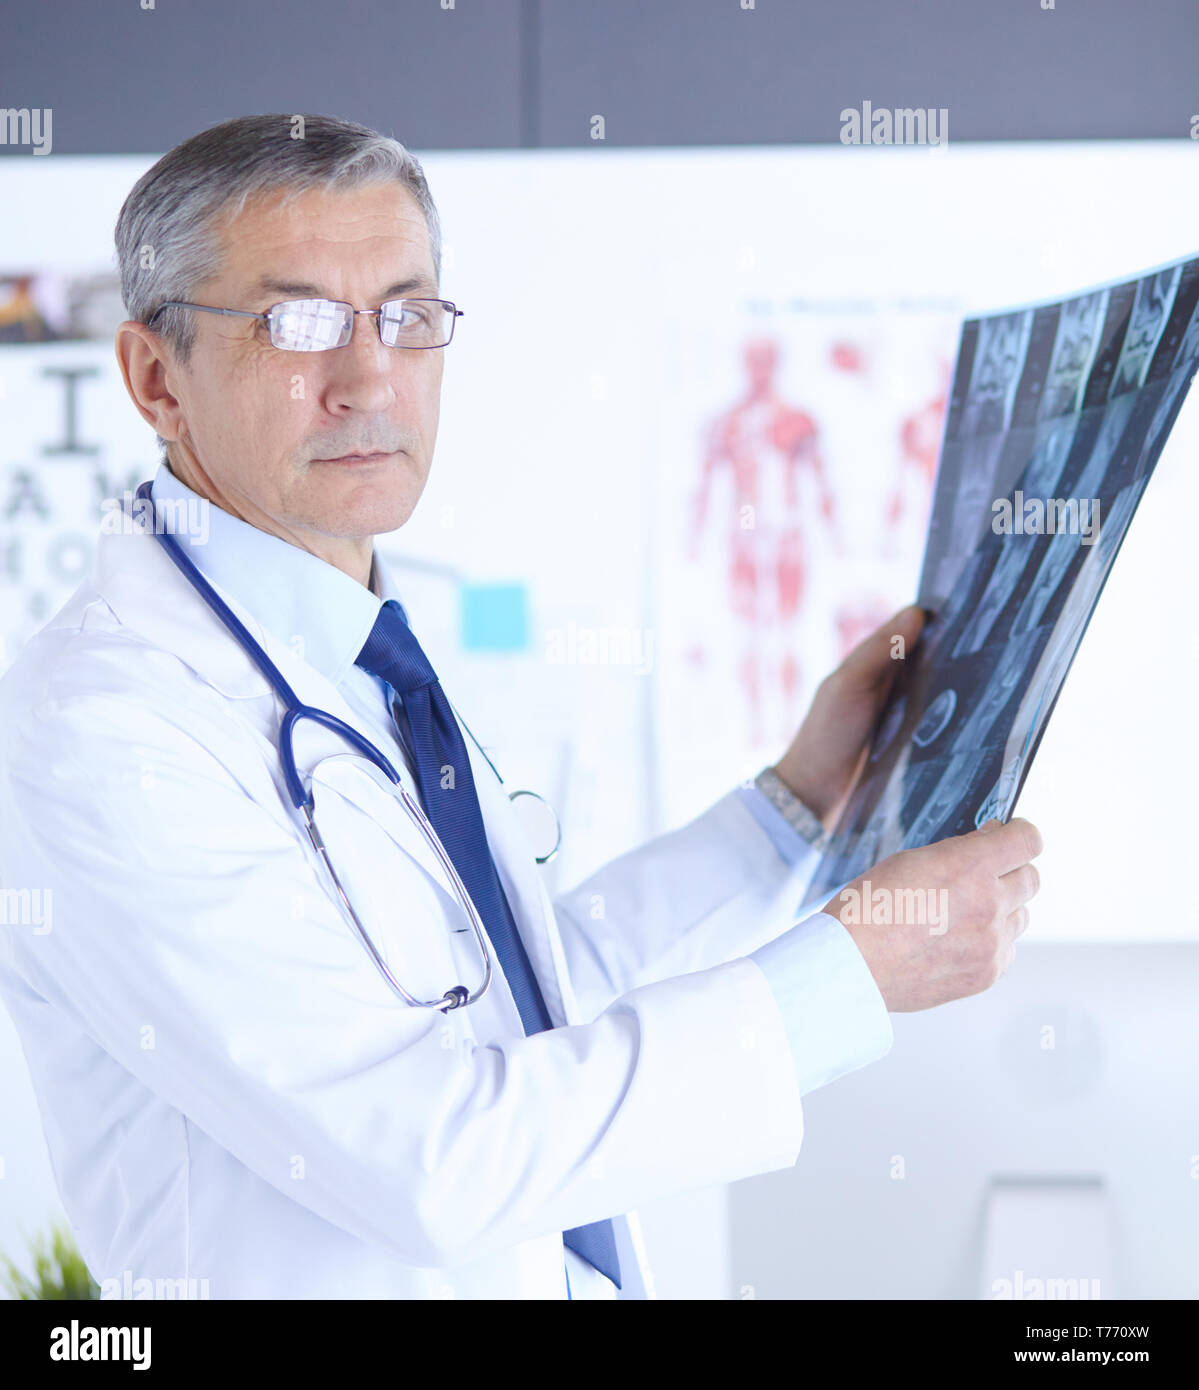 Doctor in the office examines the patient's x-ray. - Stock Image